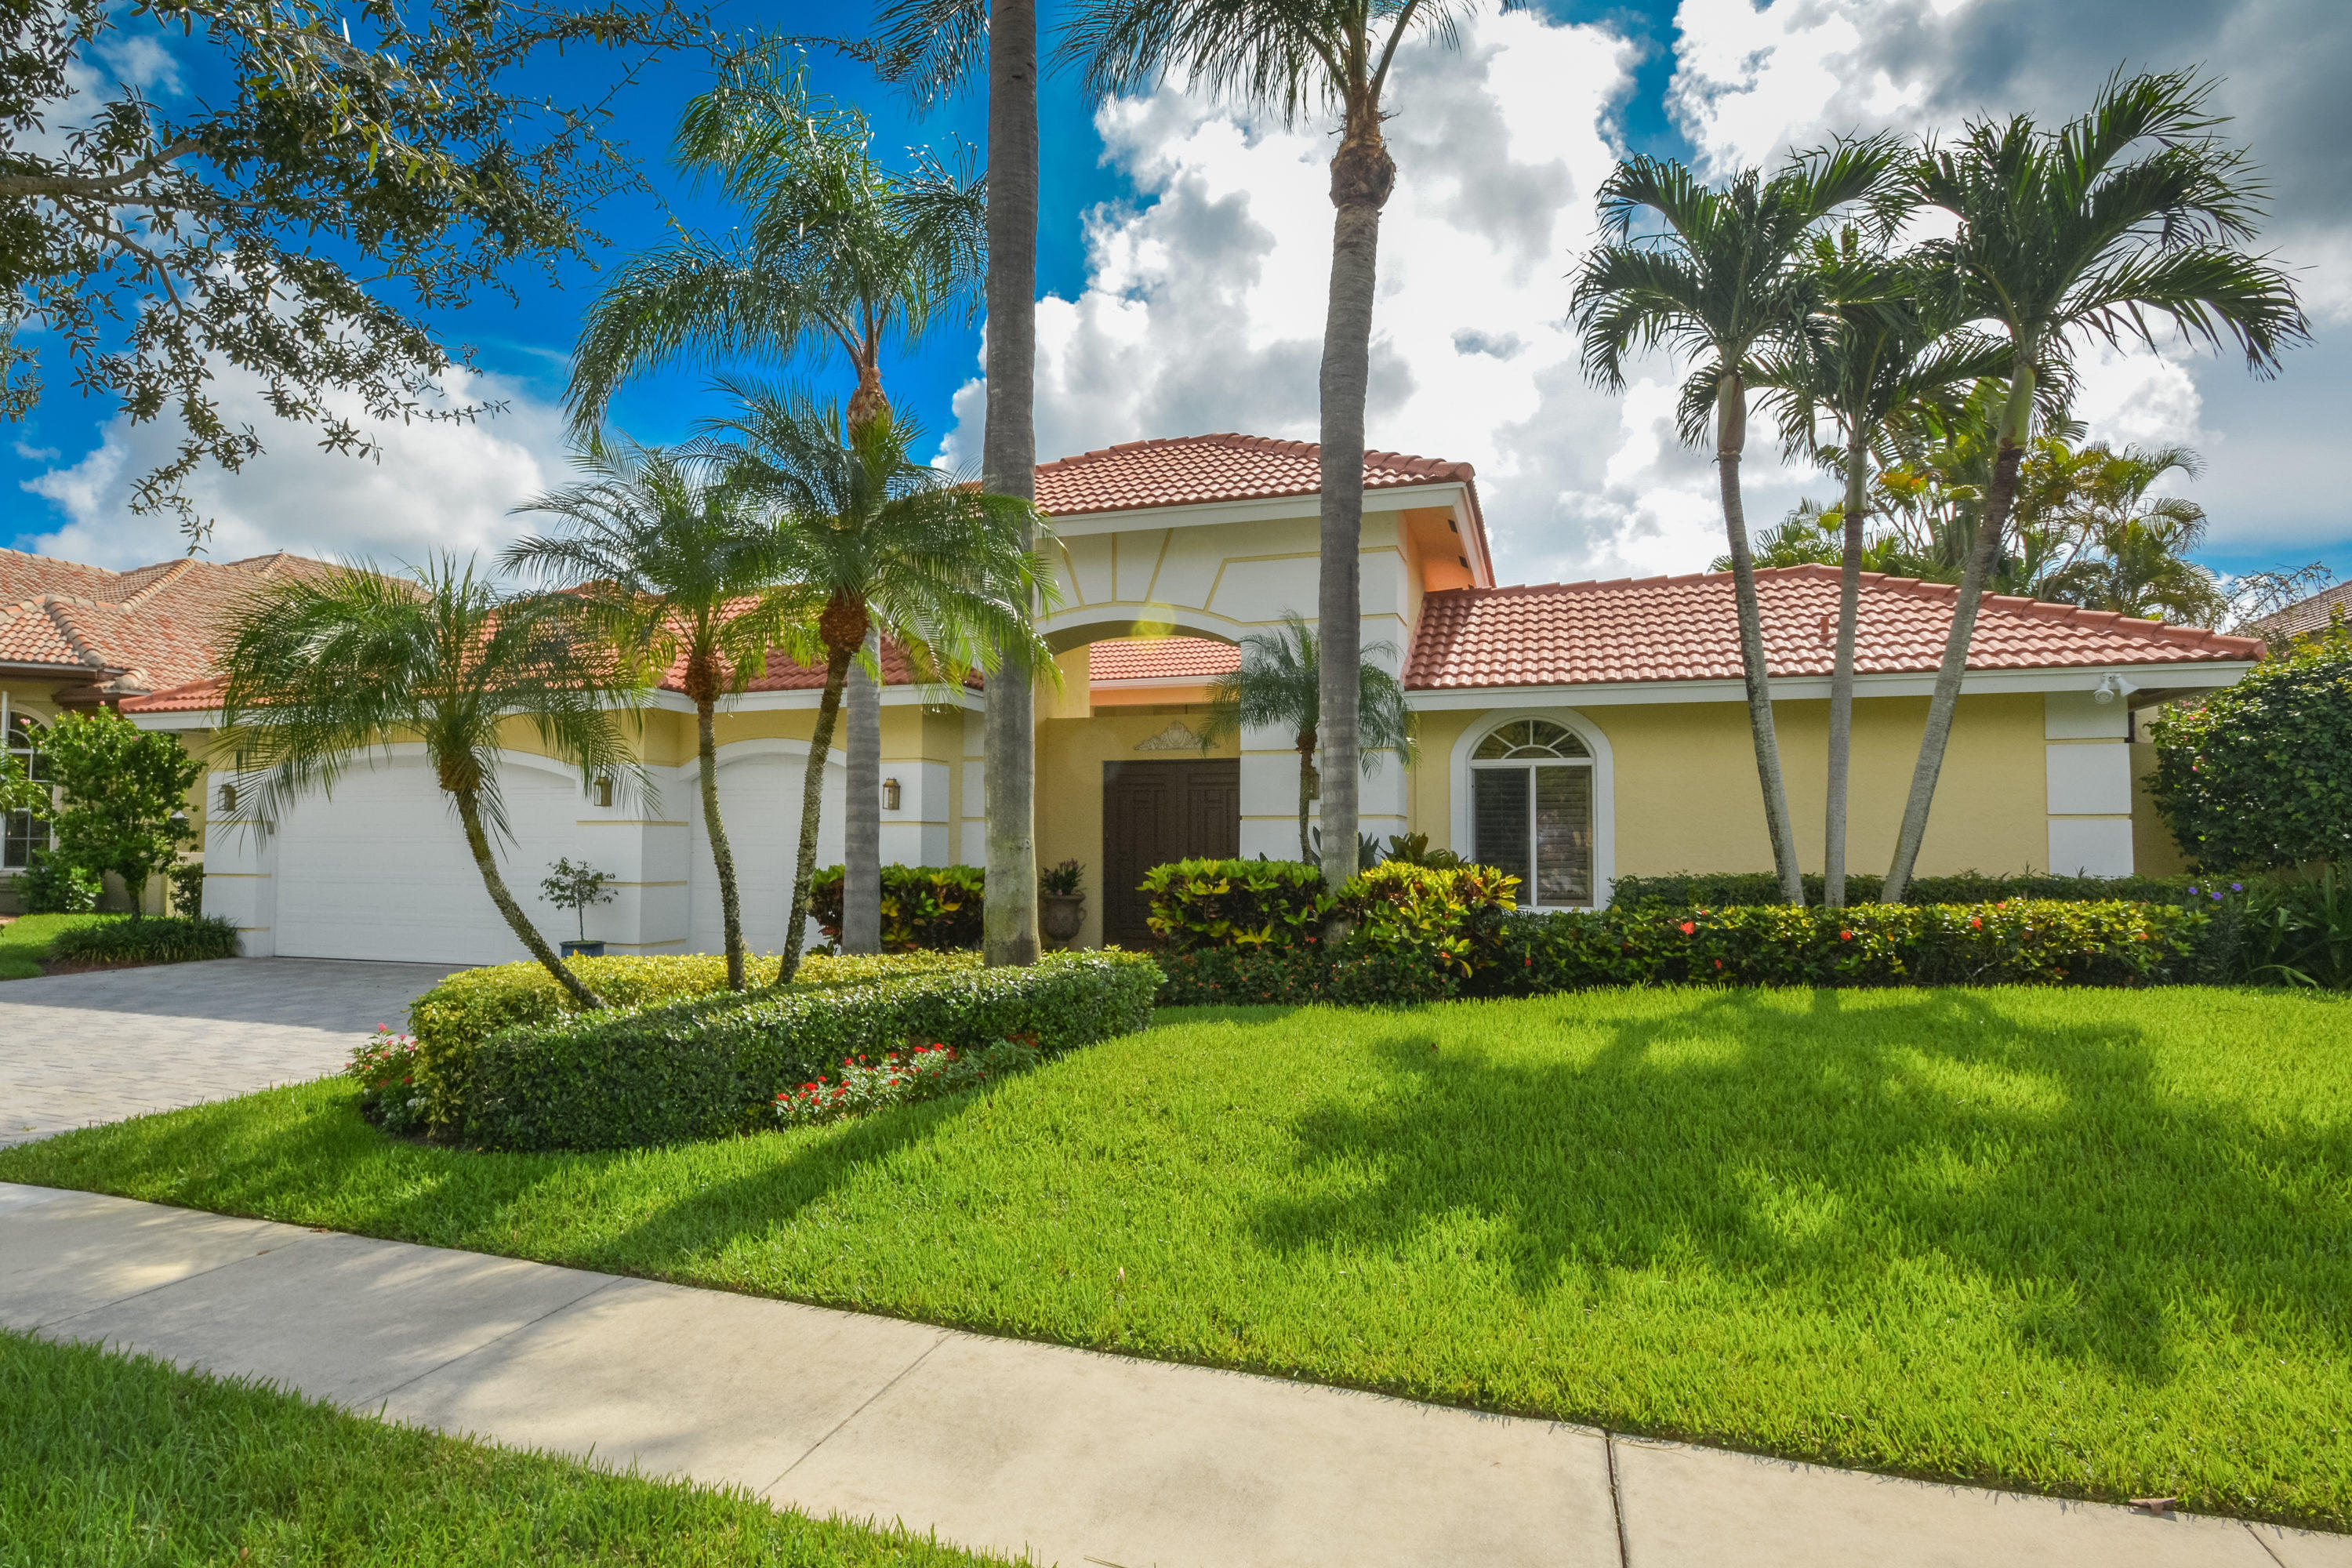 6302 Nw 30th Avenue Boca Raton, FL 33496